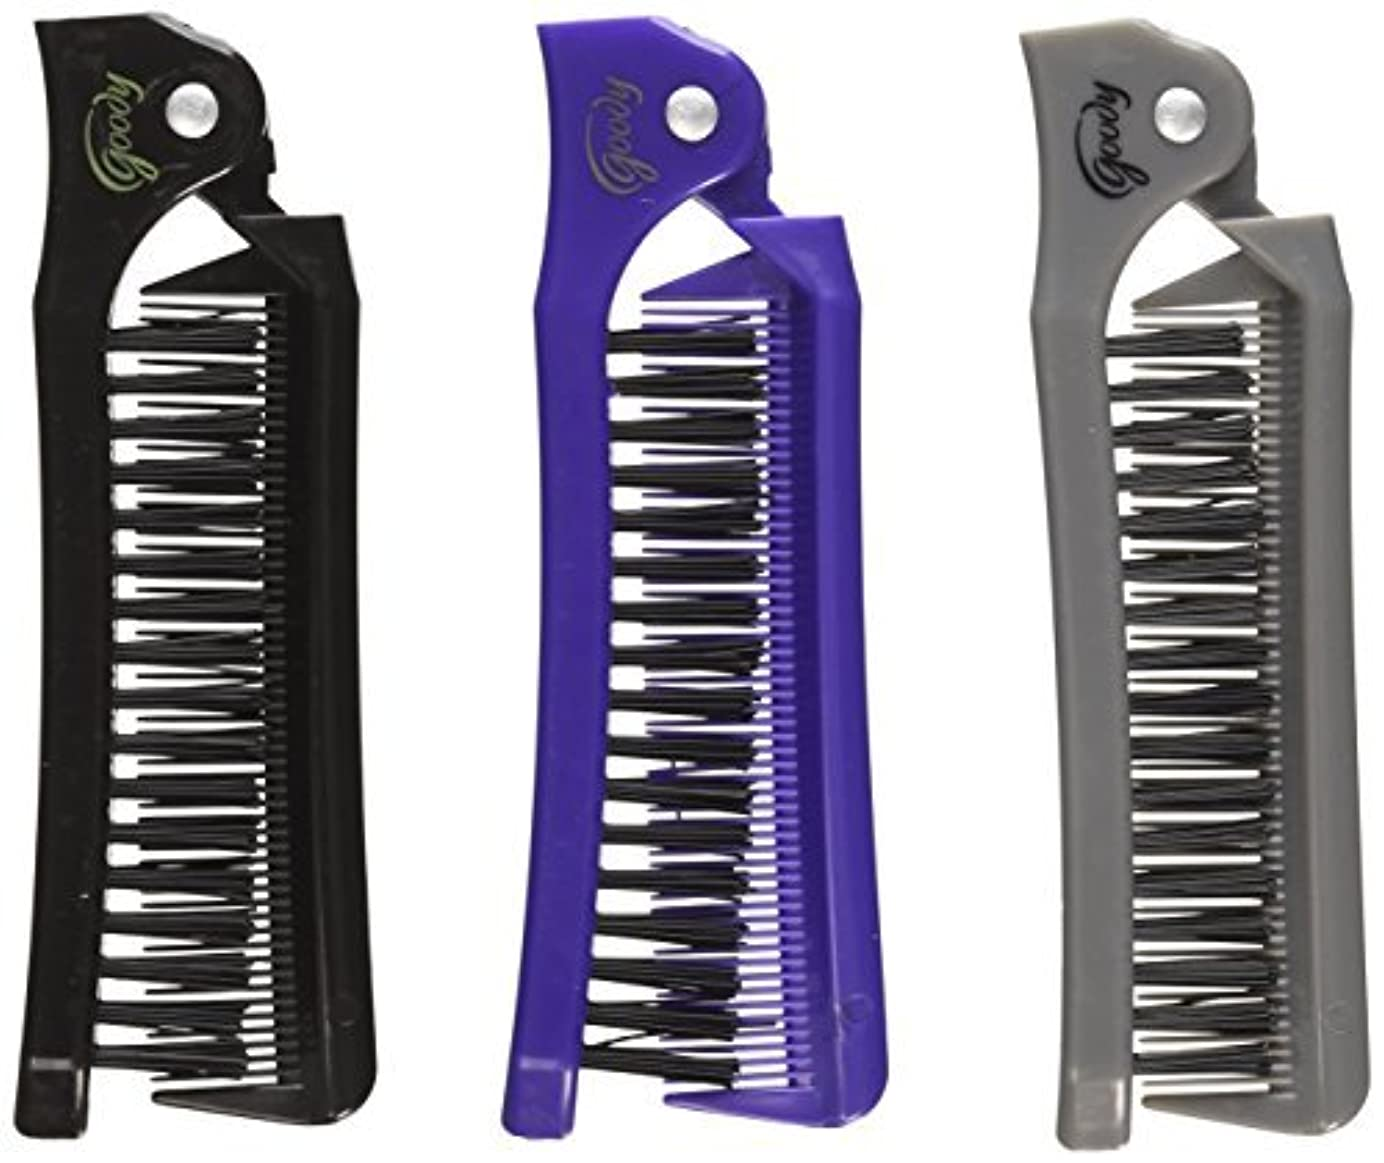 疑問に思う神秘懲戒Goody Style On The Go Folding Brush & Comb, Colors May Vary 1 ea (Pack of 3) [並行輸入品]